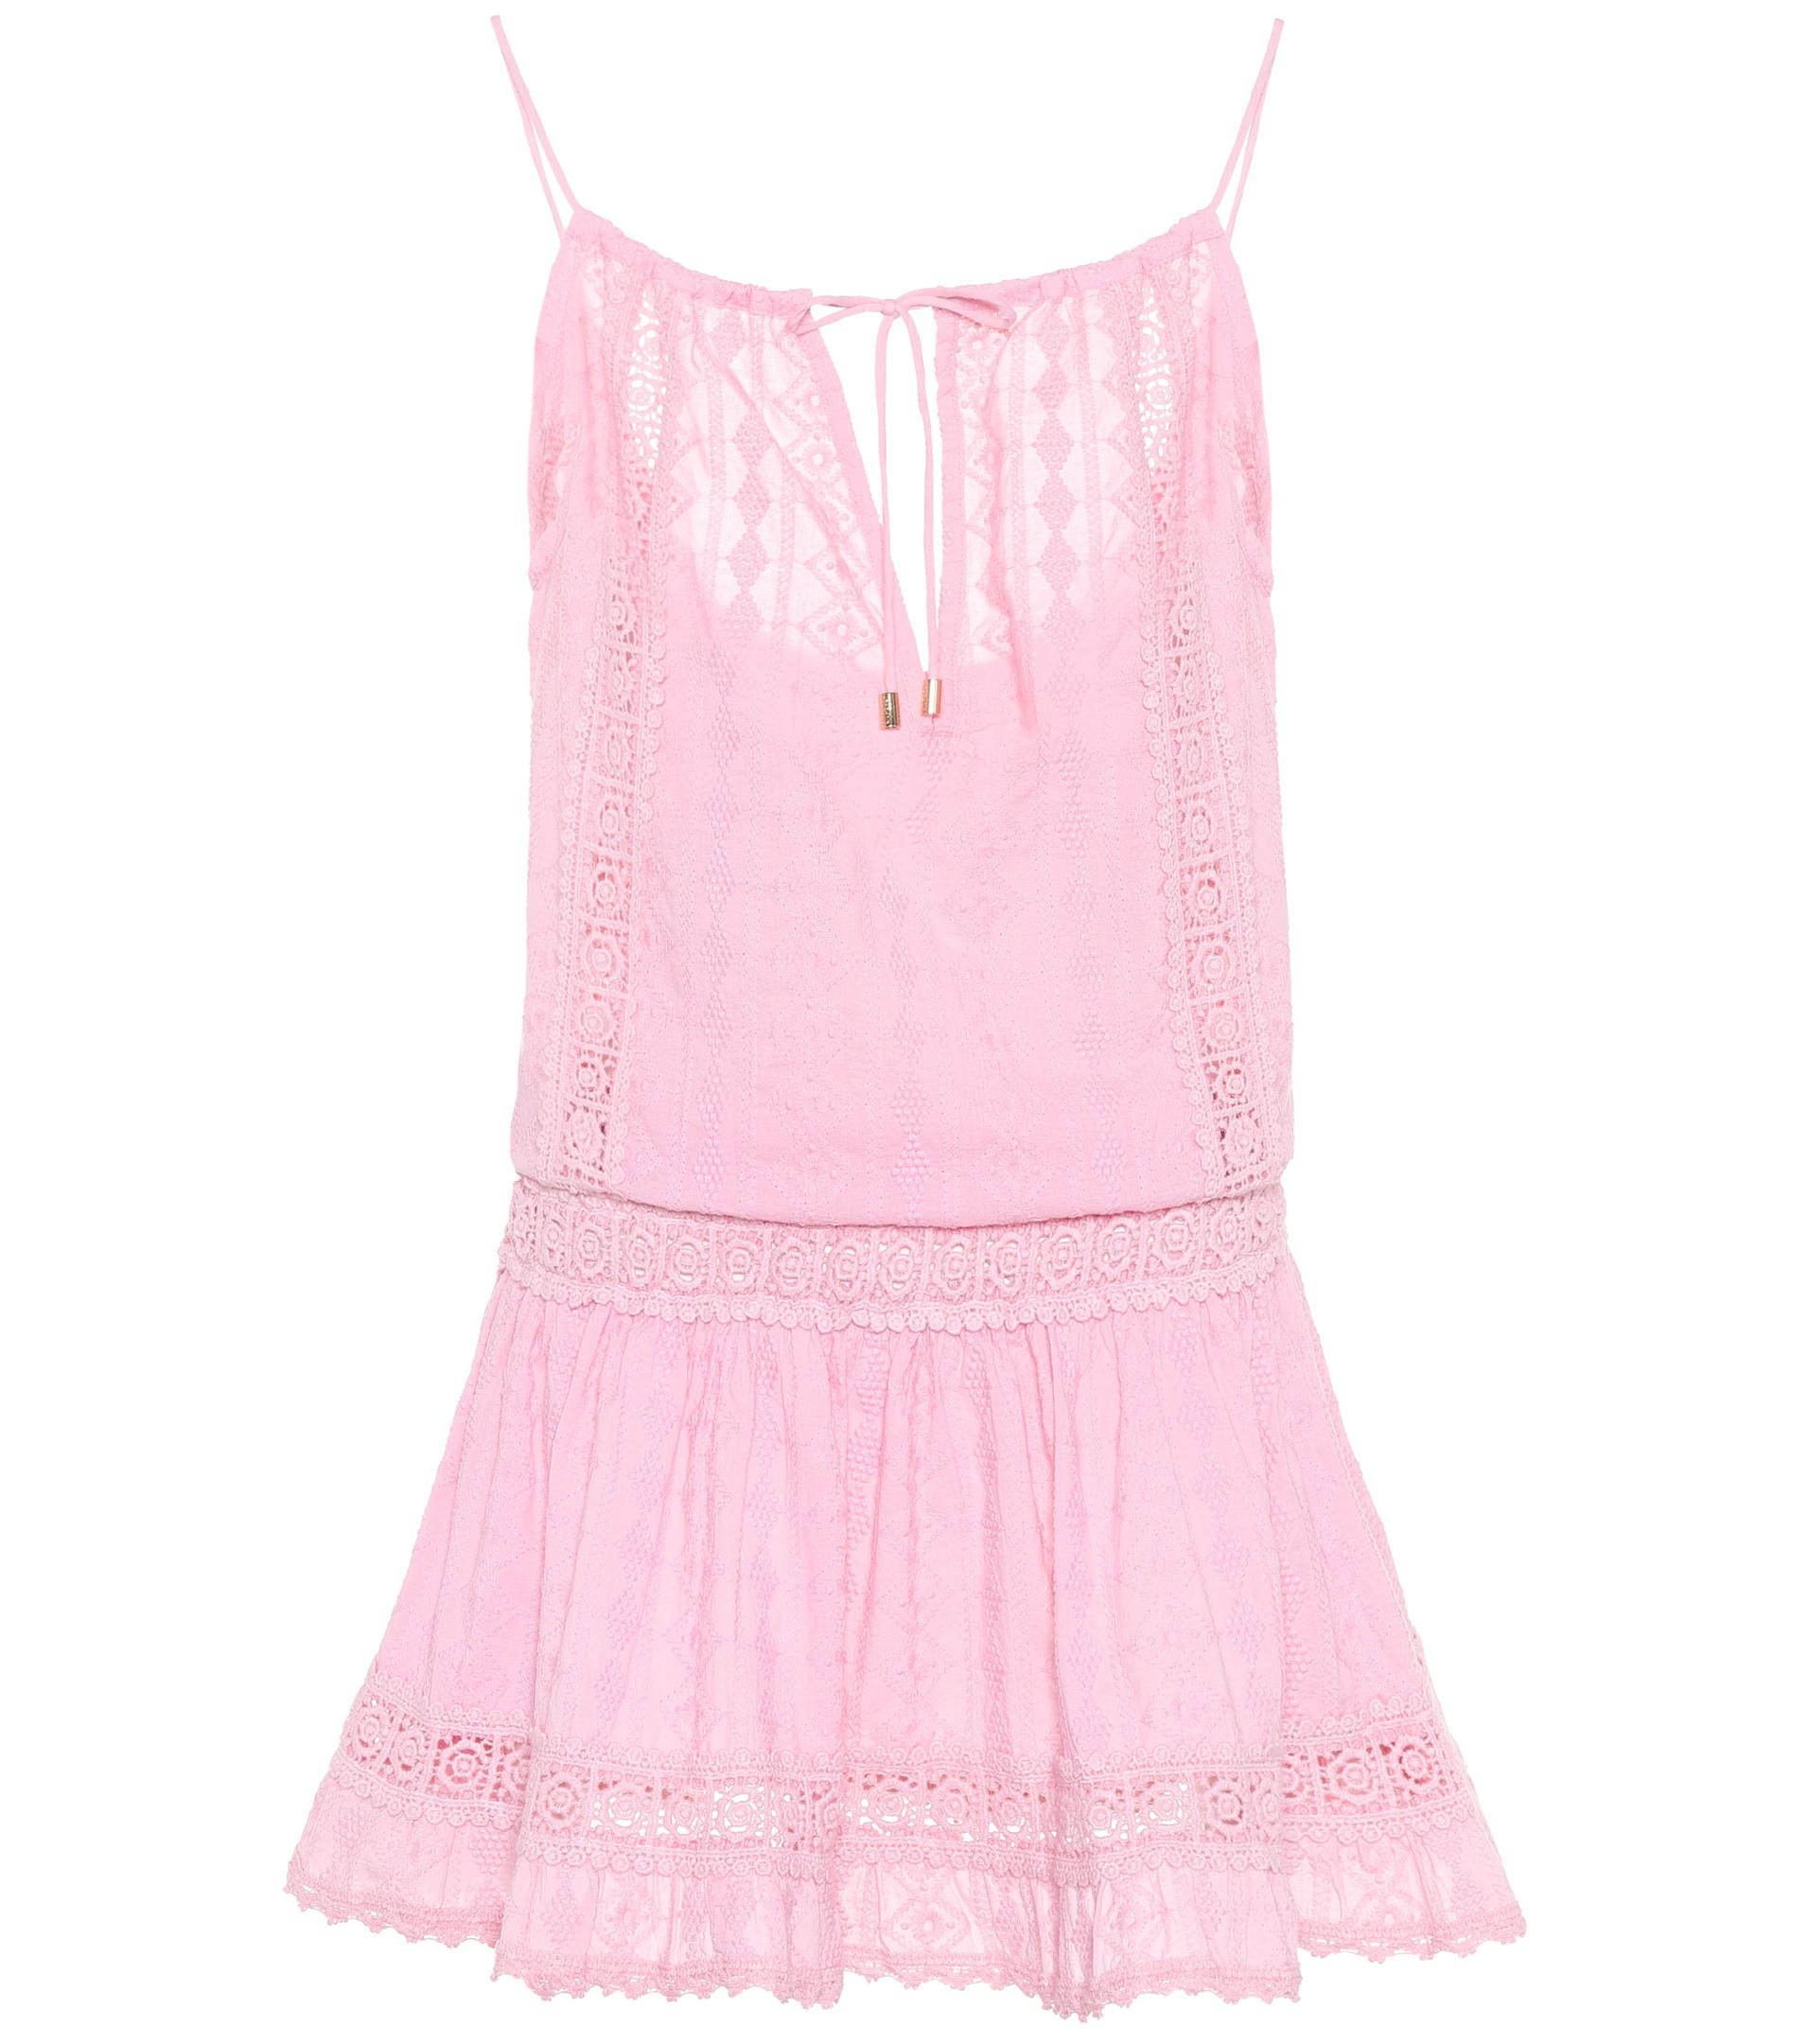 Chelsea broderie-anglaise cotton dress Melissa Odabash rMW9nG